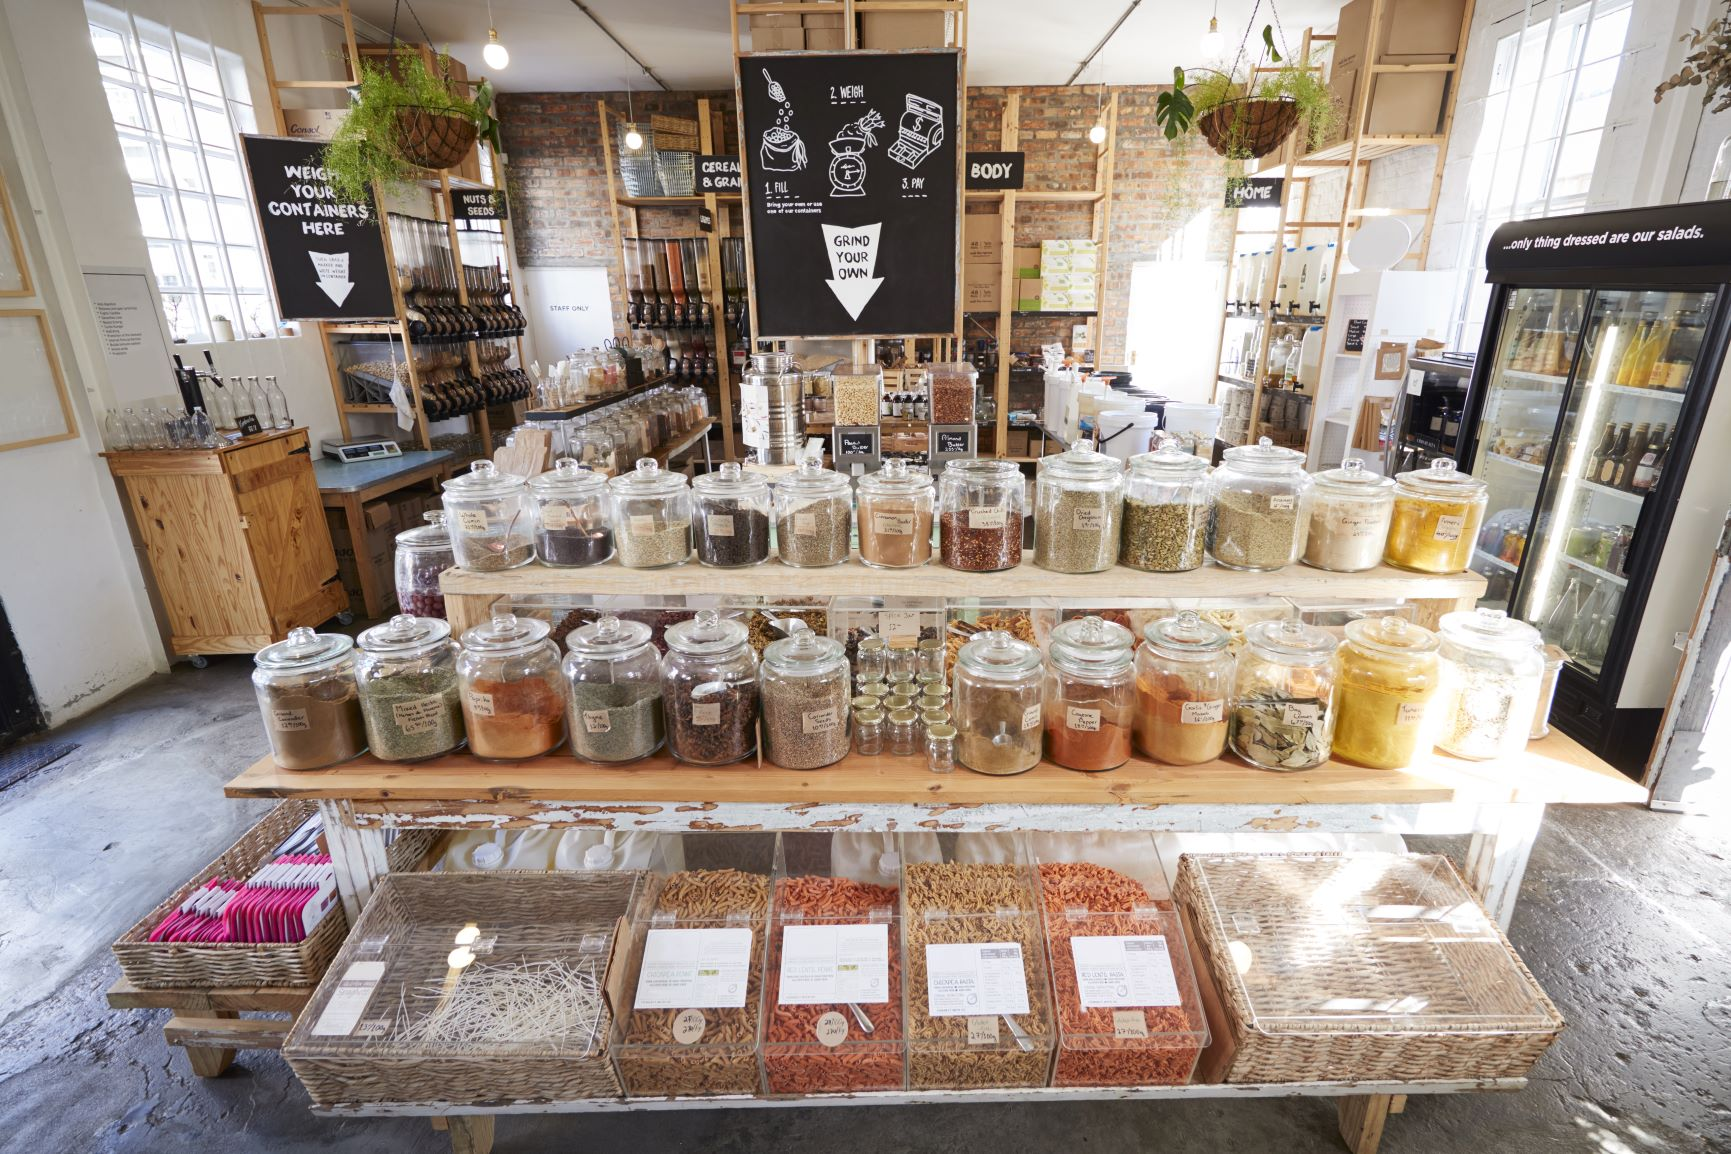 Supercharge your metabolism, rustic farmhouse bulk spice section